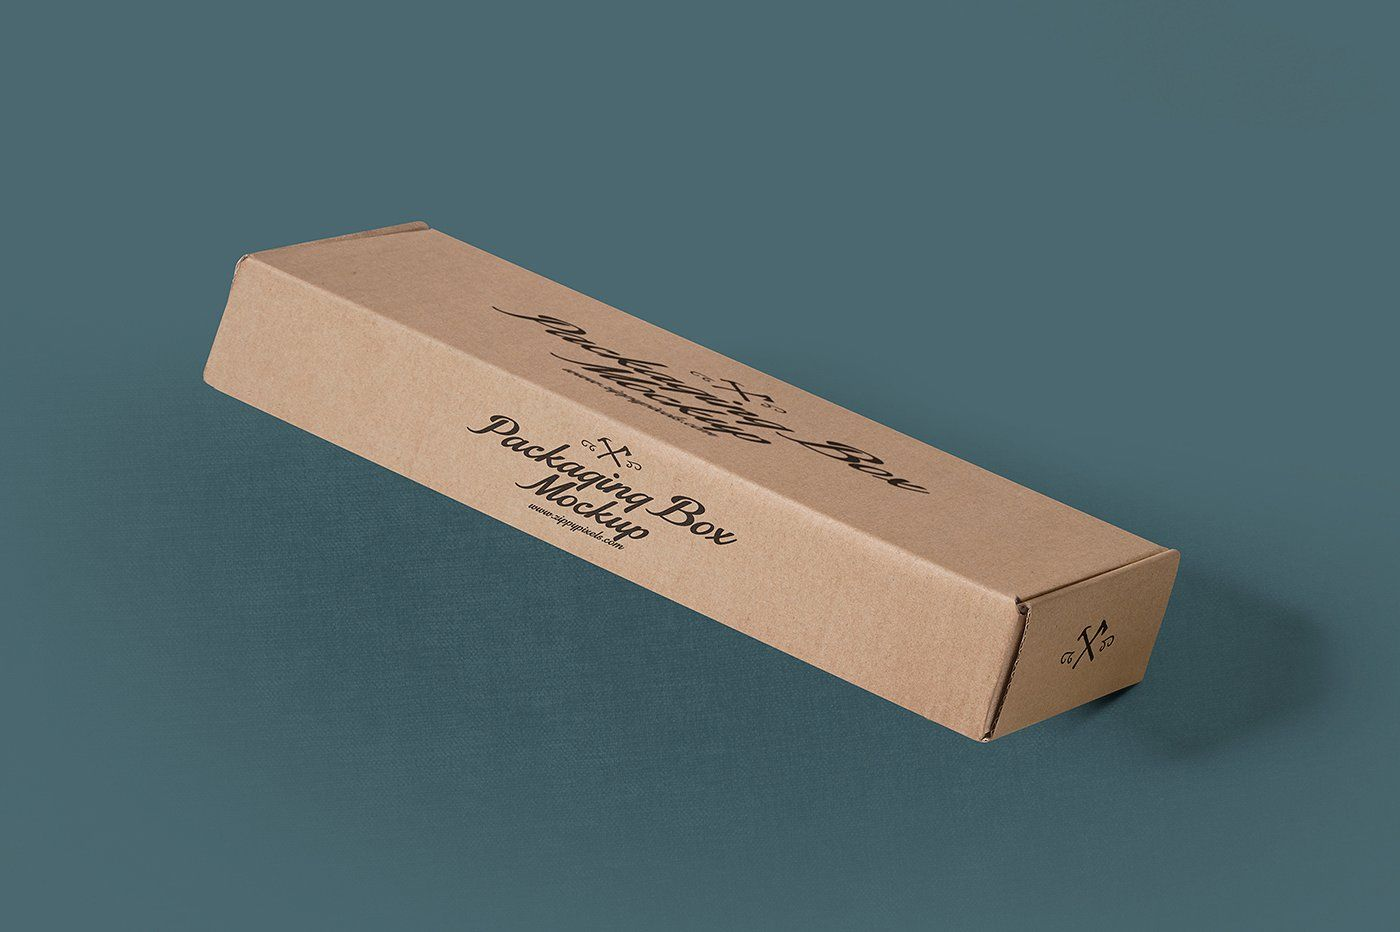 Download Rectangular Packaging Box Mockups Packaging Mockup Box Mockup Free Packaging Mockup